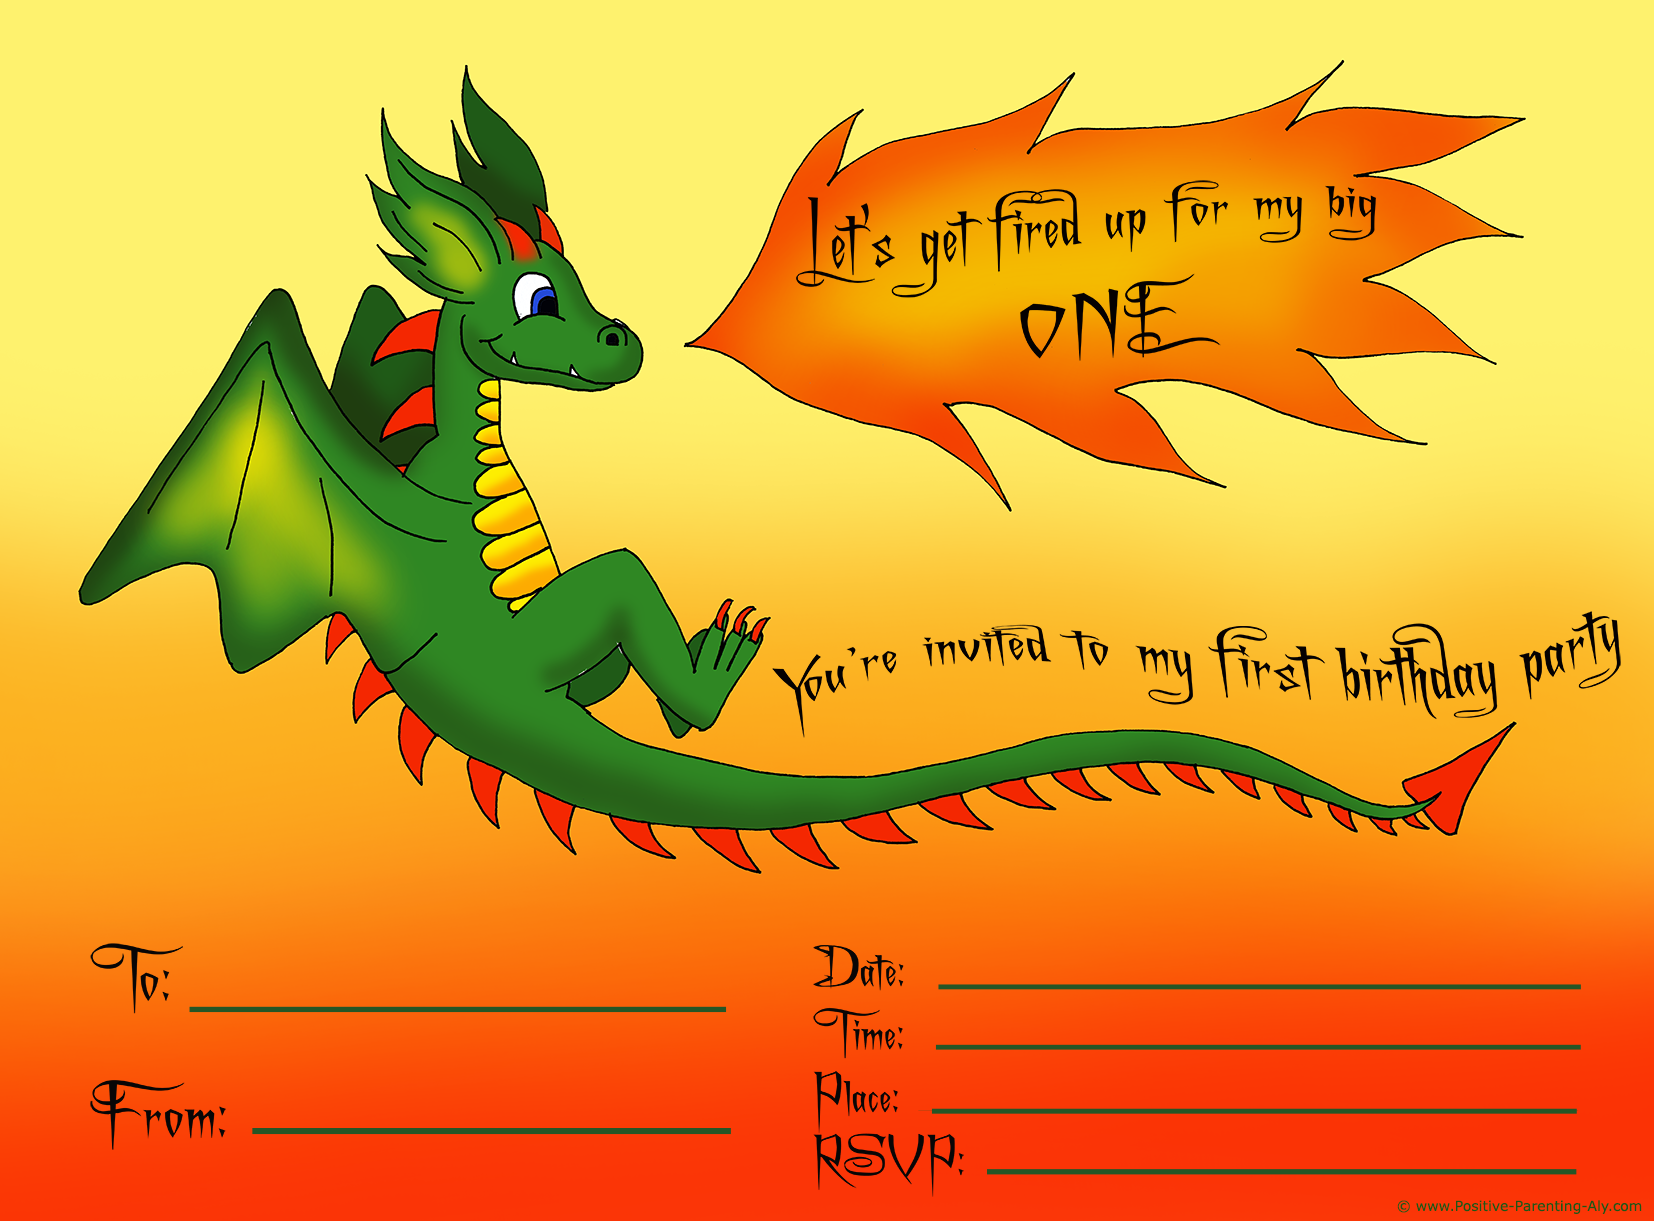 Printable First Birthday Party Invitation For Boys A Cute Dragon Spewing Fire